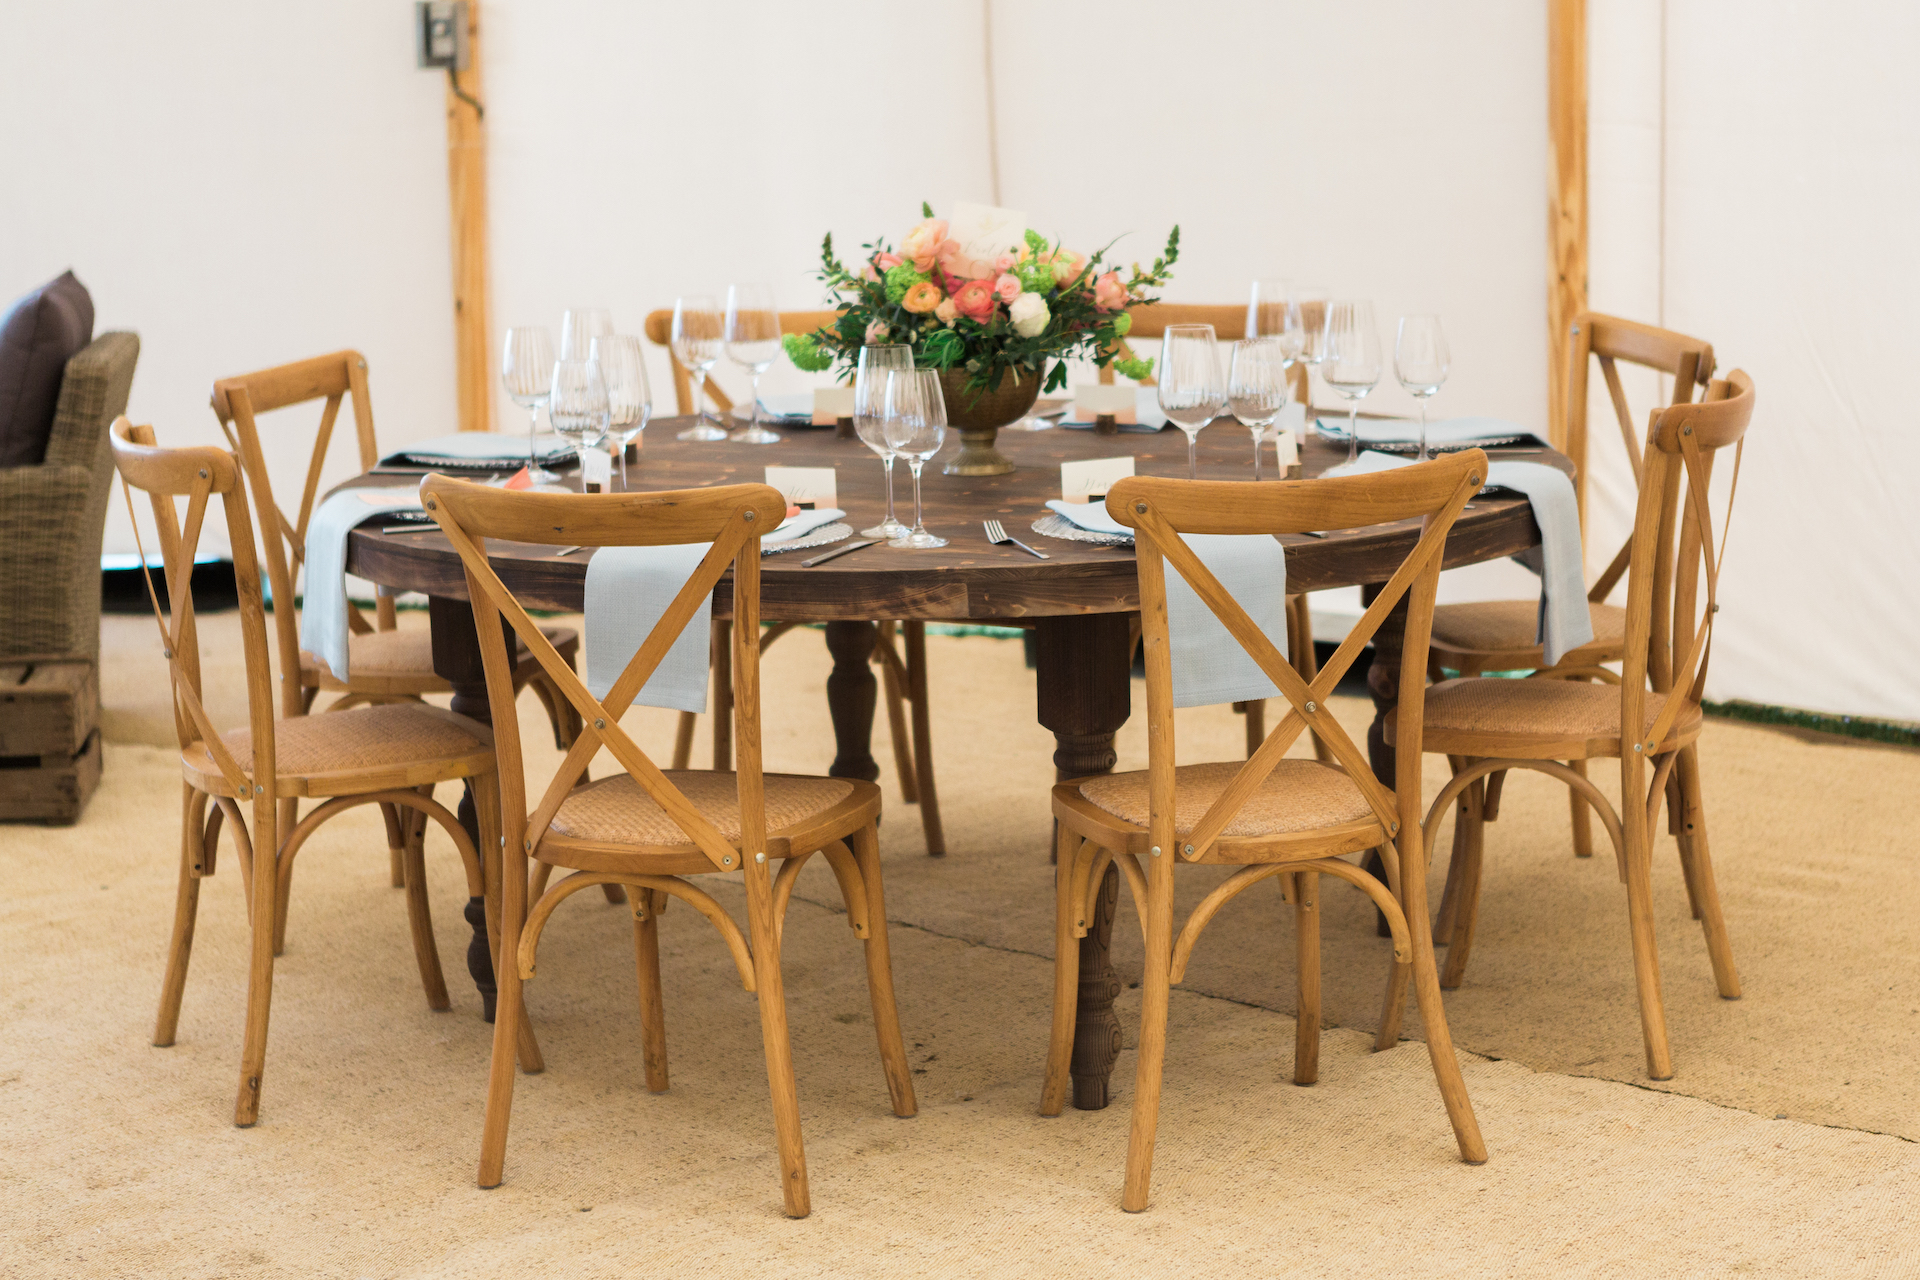 PapaKåta Spring Open Weekend Sperry Tent captured by Lucy Davenport Photography: Round Farmhouse Table with Cross Back Chairs